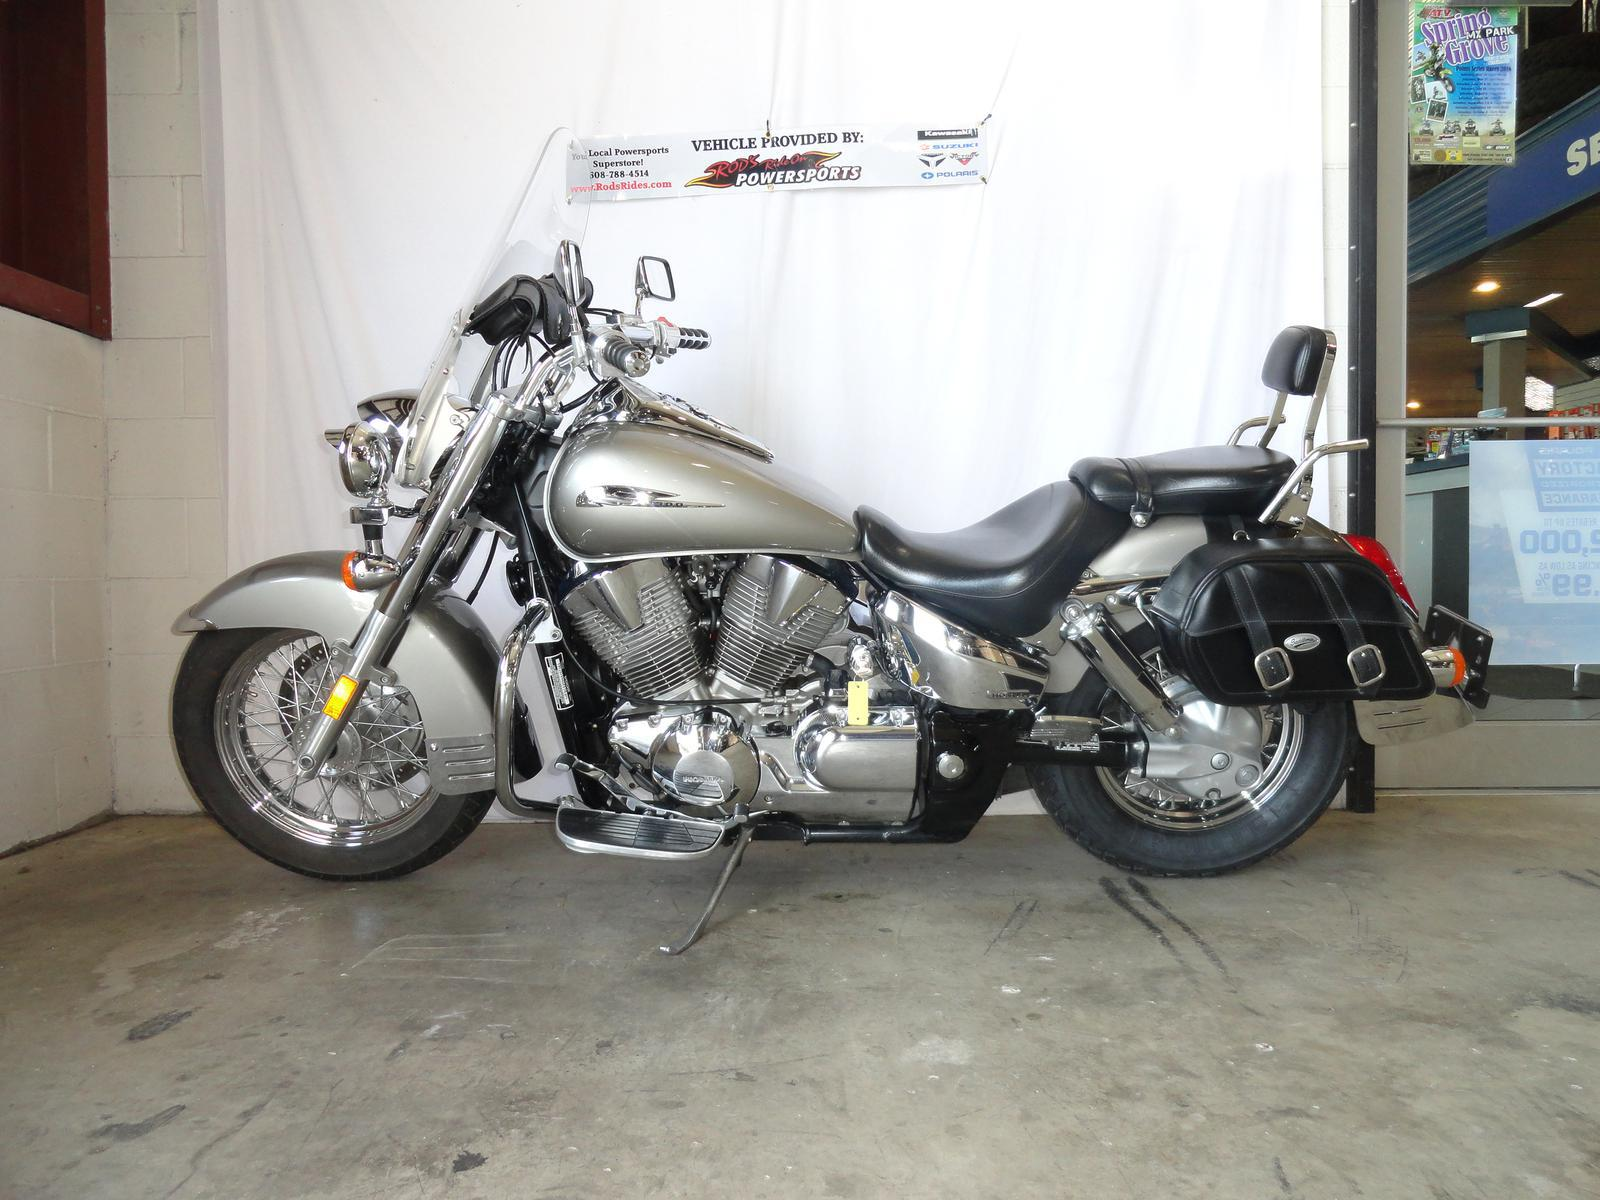 Used Inventory Rod's Ride On Powersports La Crosse, WI (608) 788-4514